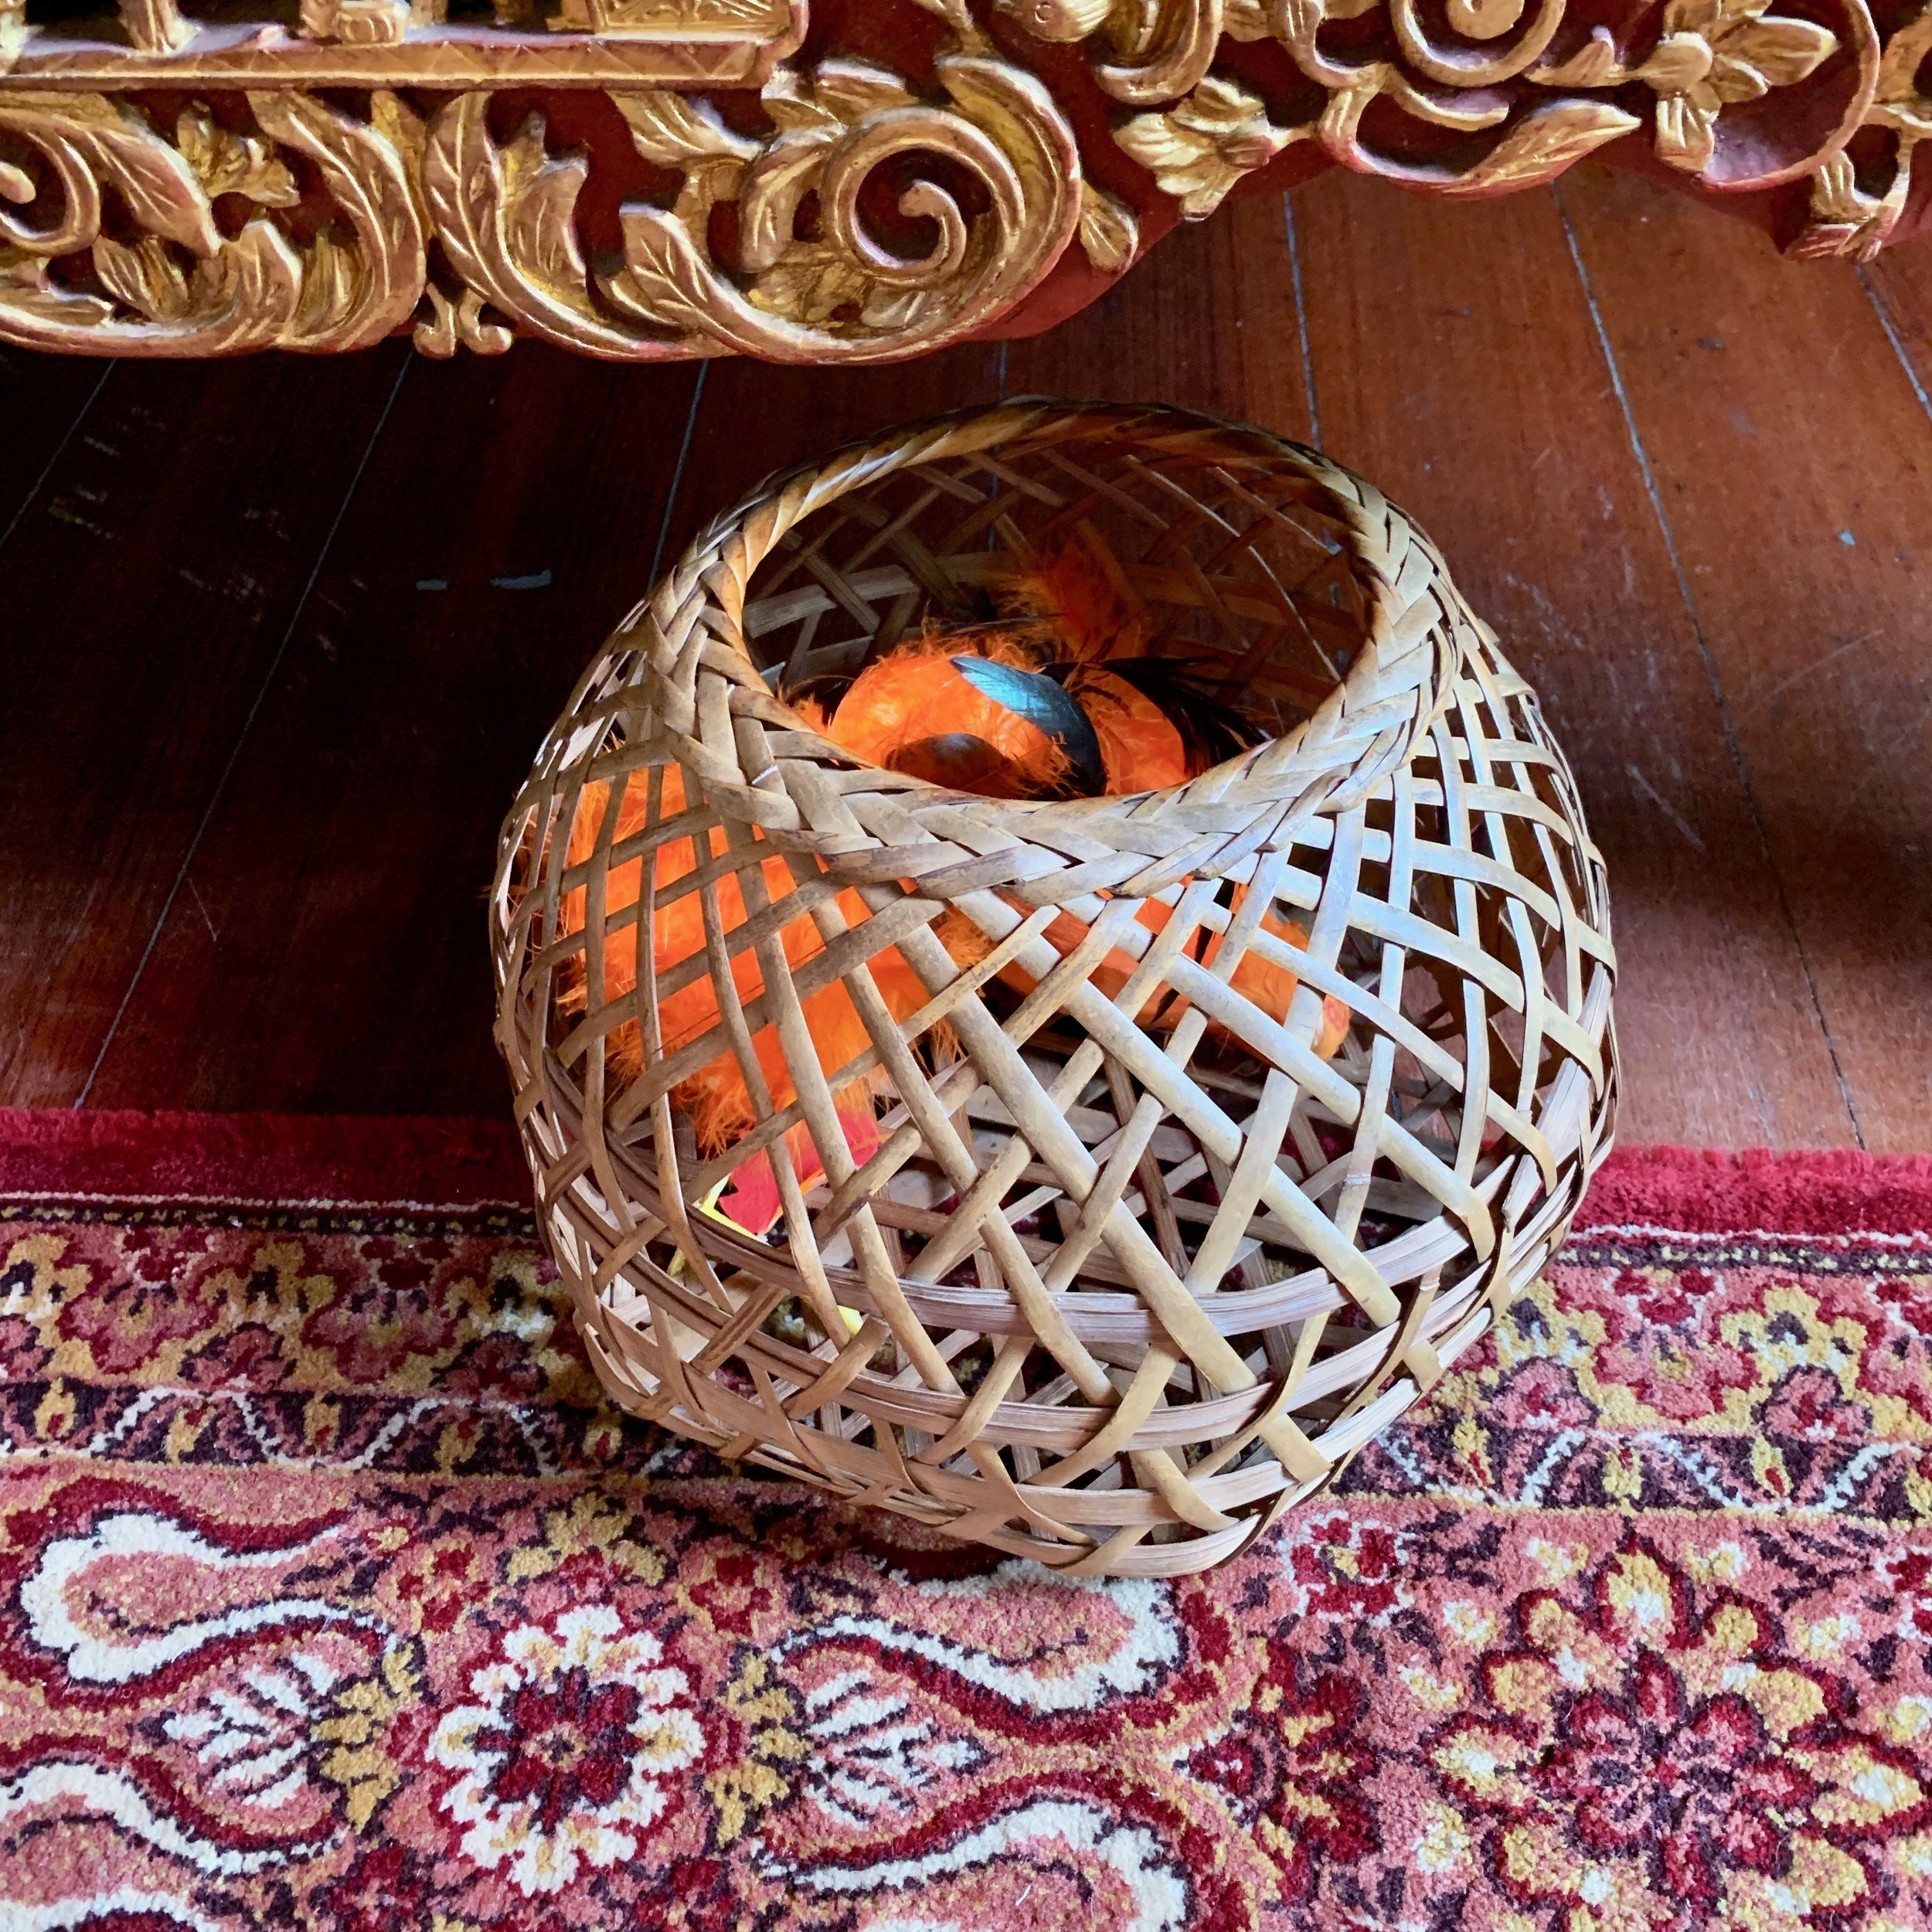 On the wedding night, this basket would be placed beneath the bed with two chickens of different sizes in it. In the morning, the mothers would open the basket and if the large chicken popped out first, the baby would be a boy, the smaller chicken, a girl.